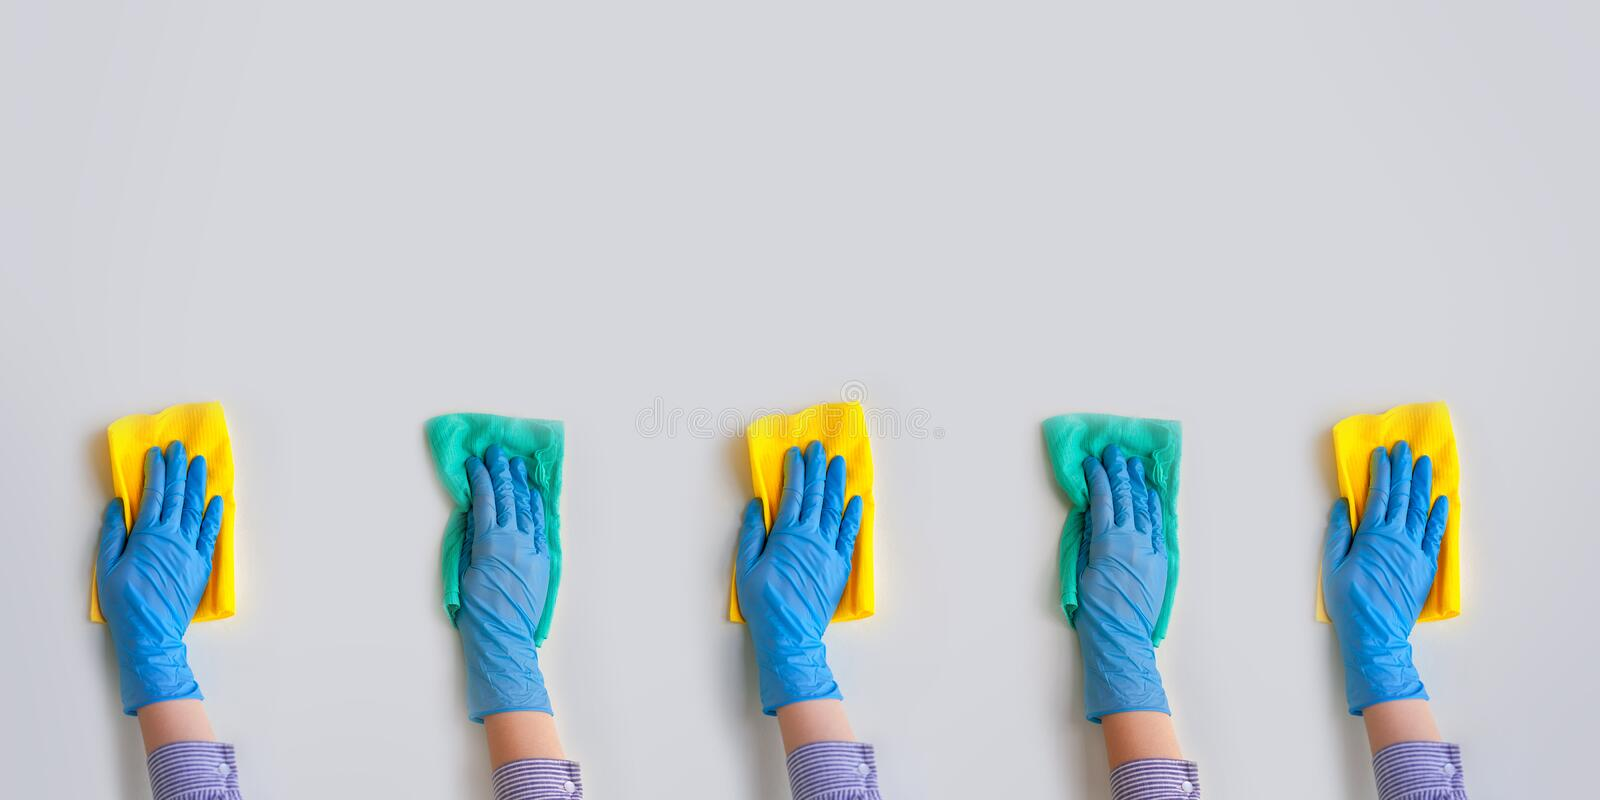 Commercial cleaning company. Employee hands in blue rubber protective glove. General or regular cleanup stock image